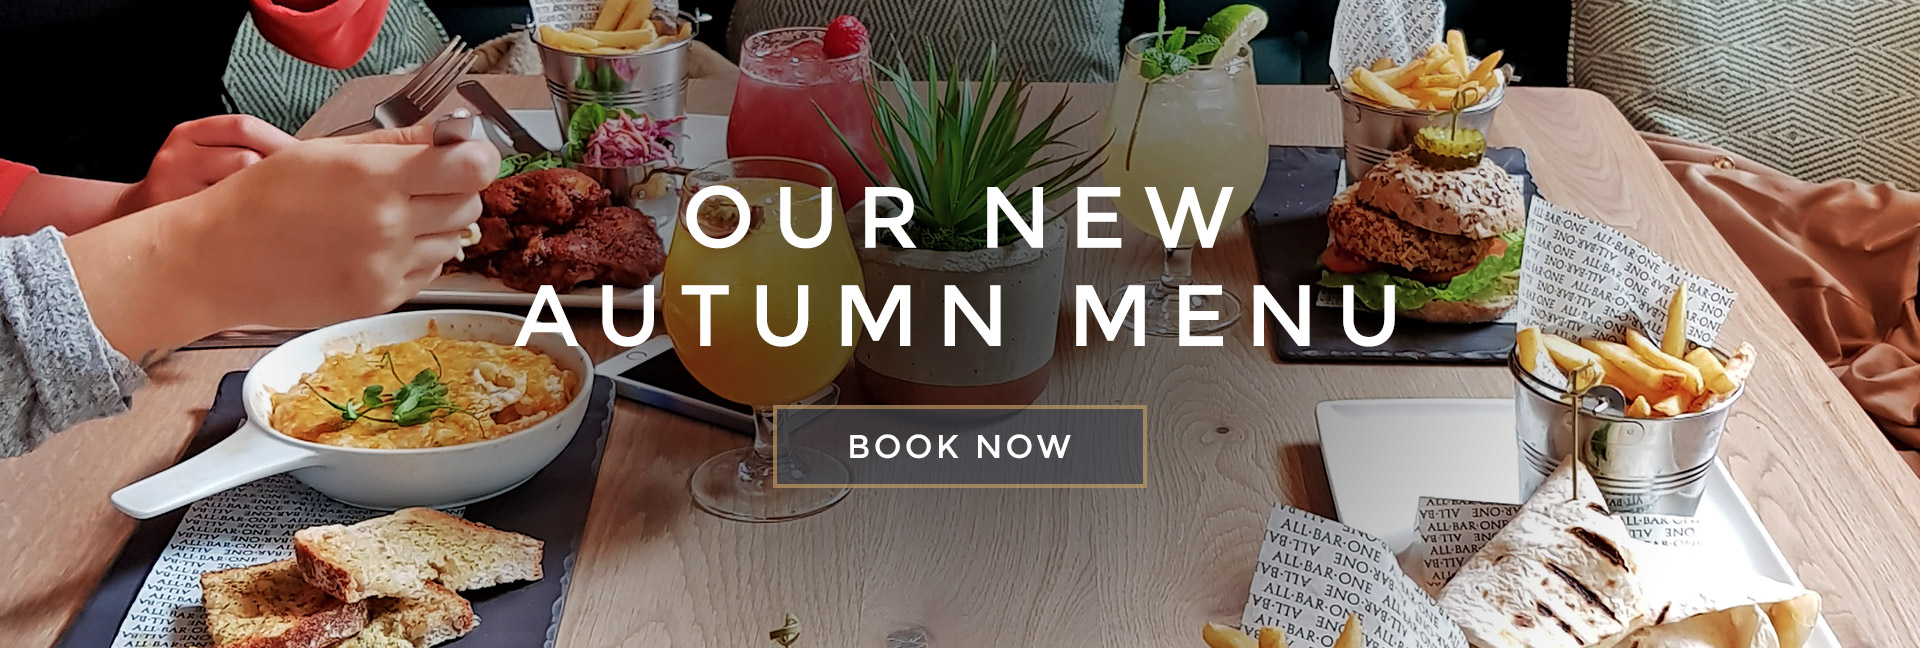 Our new Autumn menu at All Bar One Villiers Street - Book now